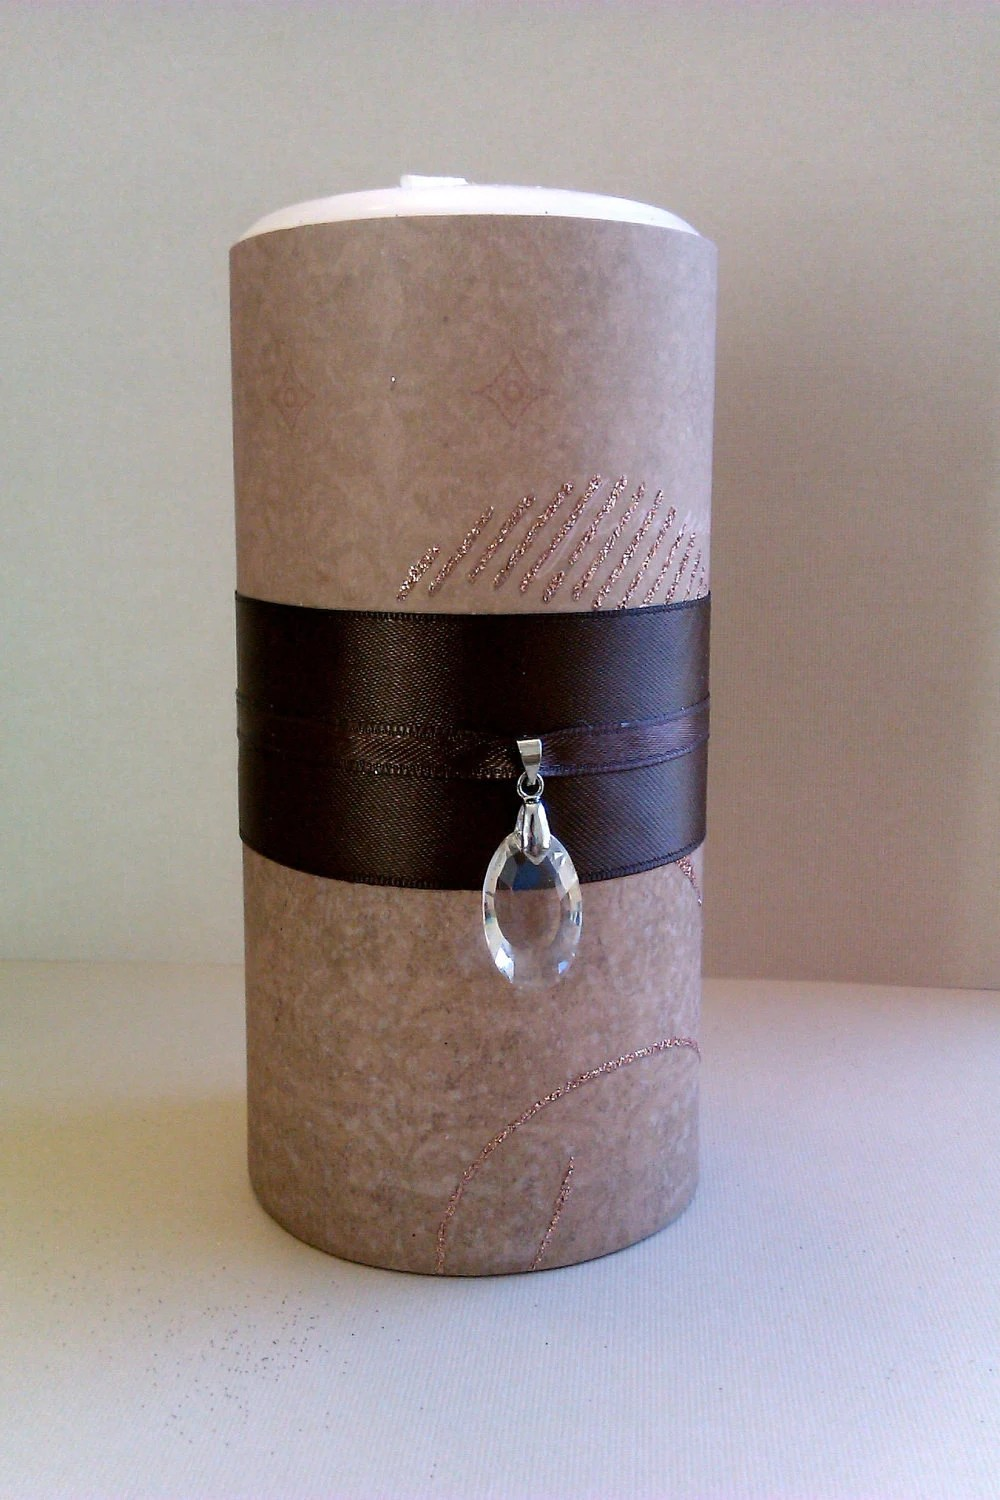 Vanilla Scented Pillar Candle 6 inch